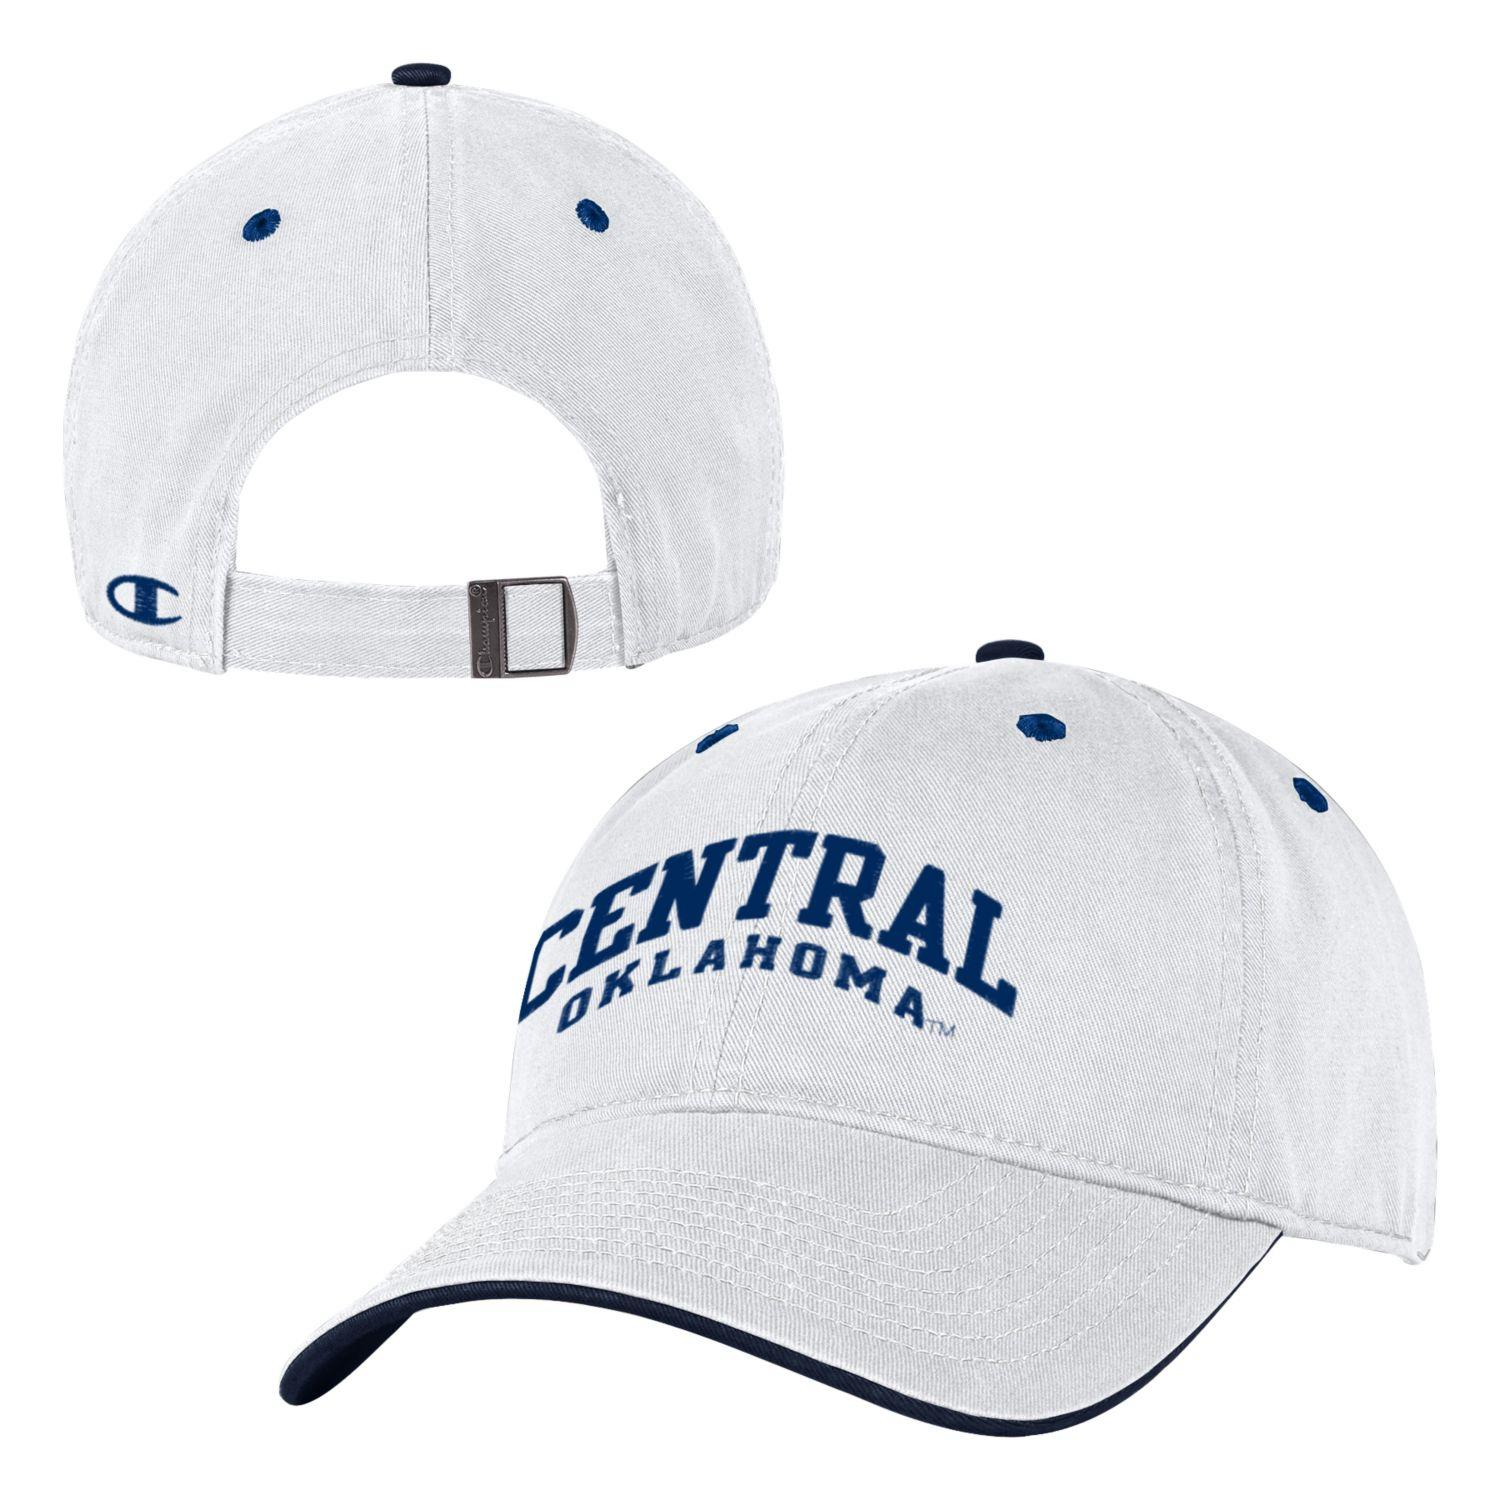 Central Oklahoma Hat